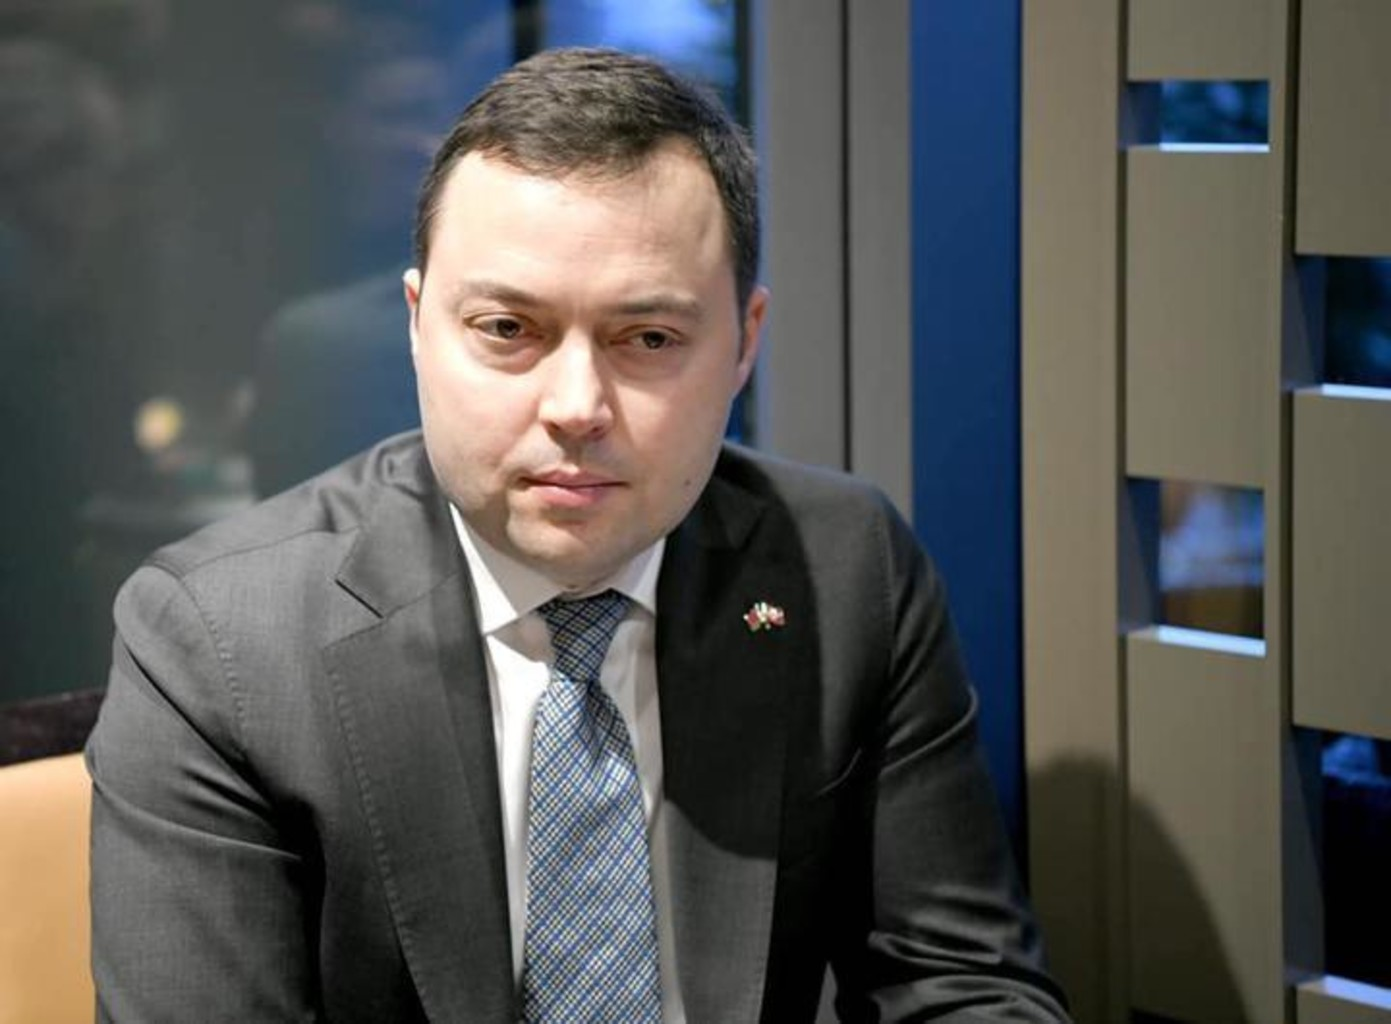 Pavel macukevich 02